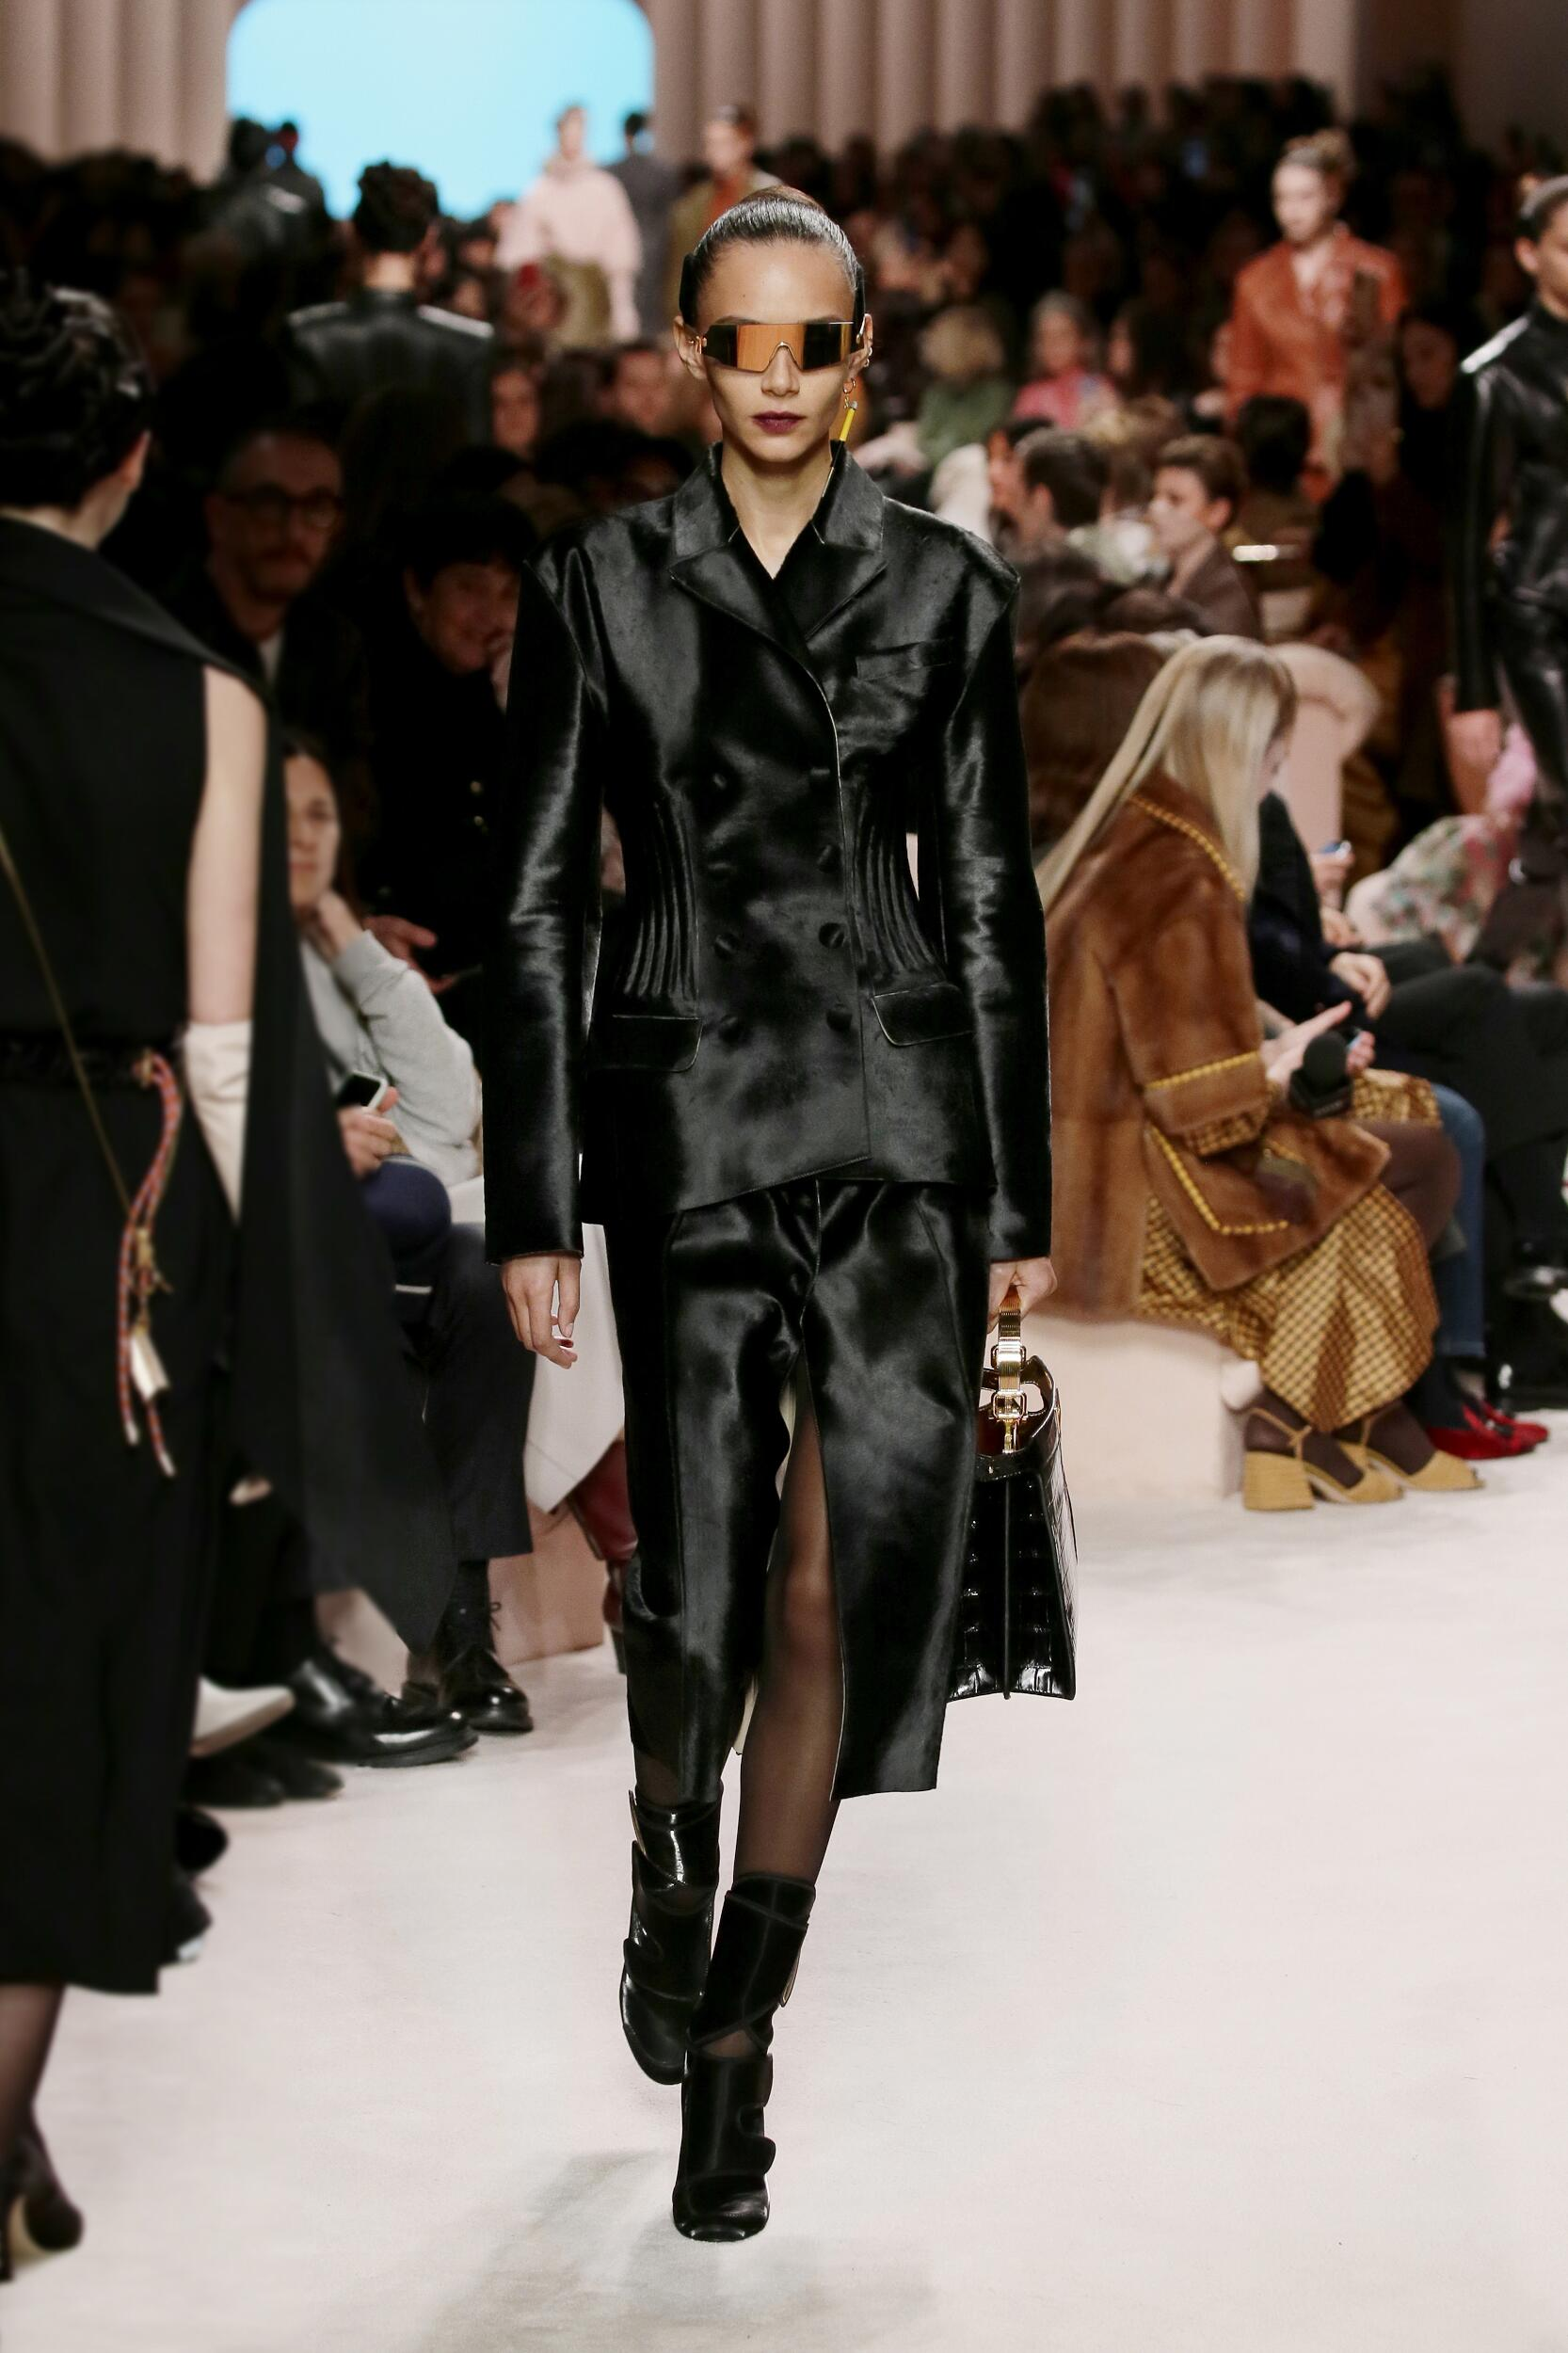 Woman FW 2020 Fendi